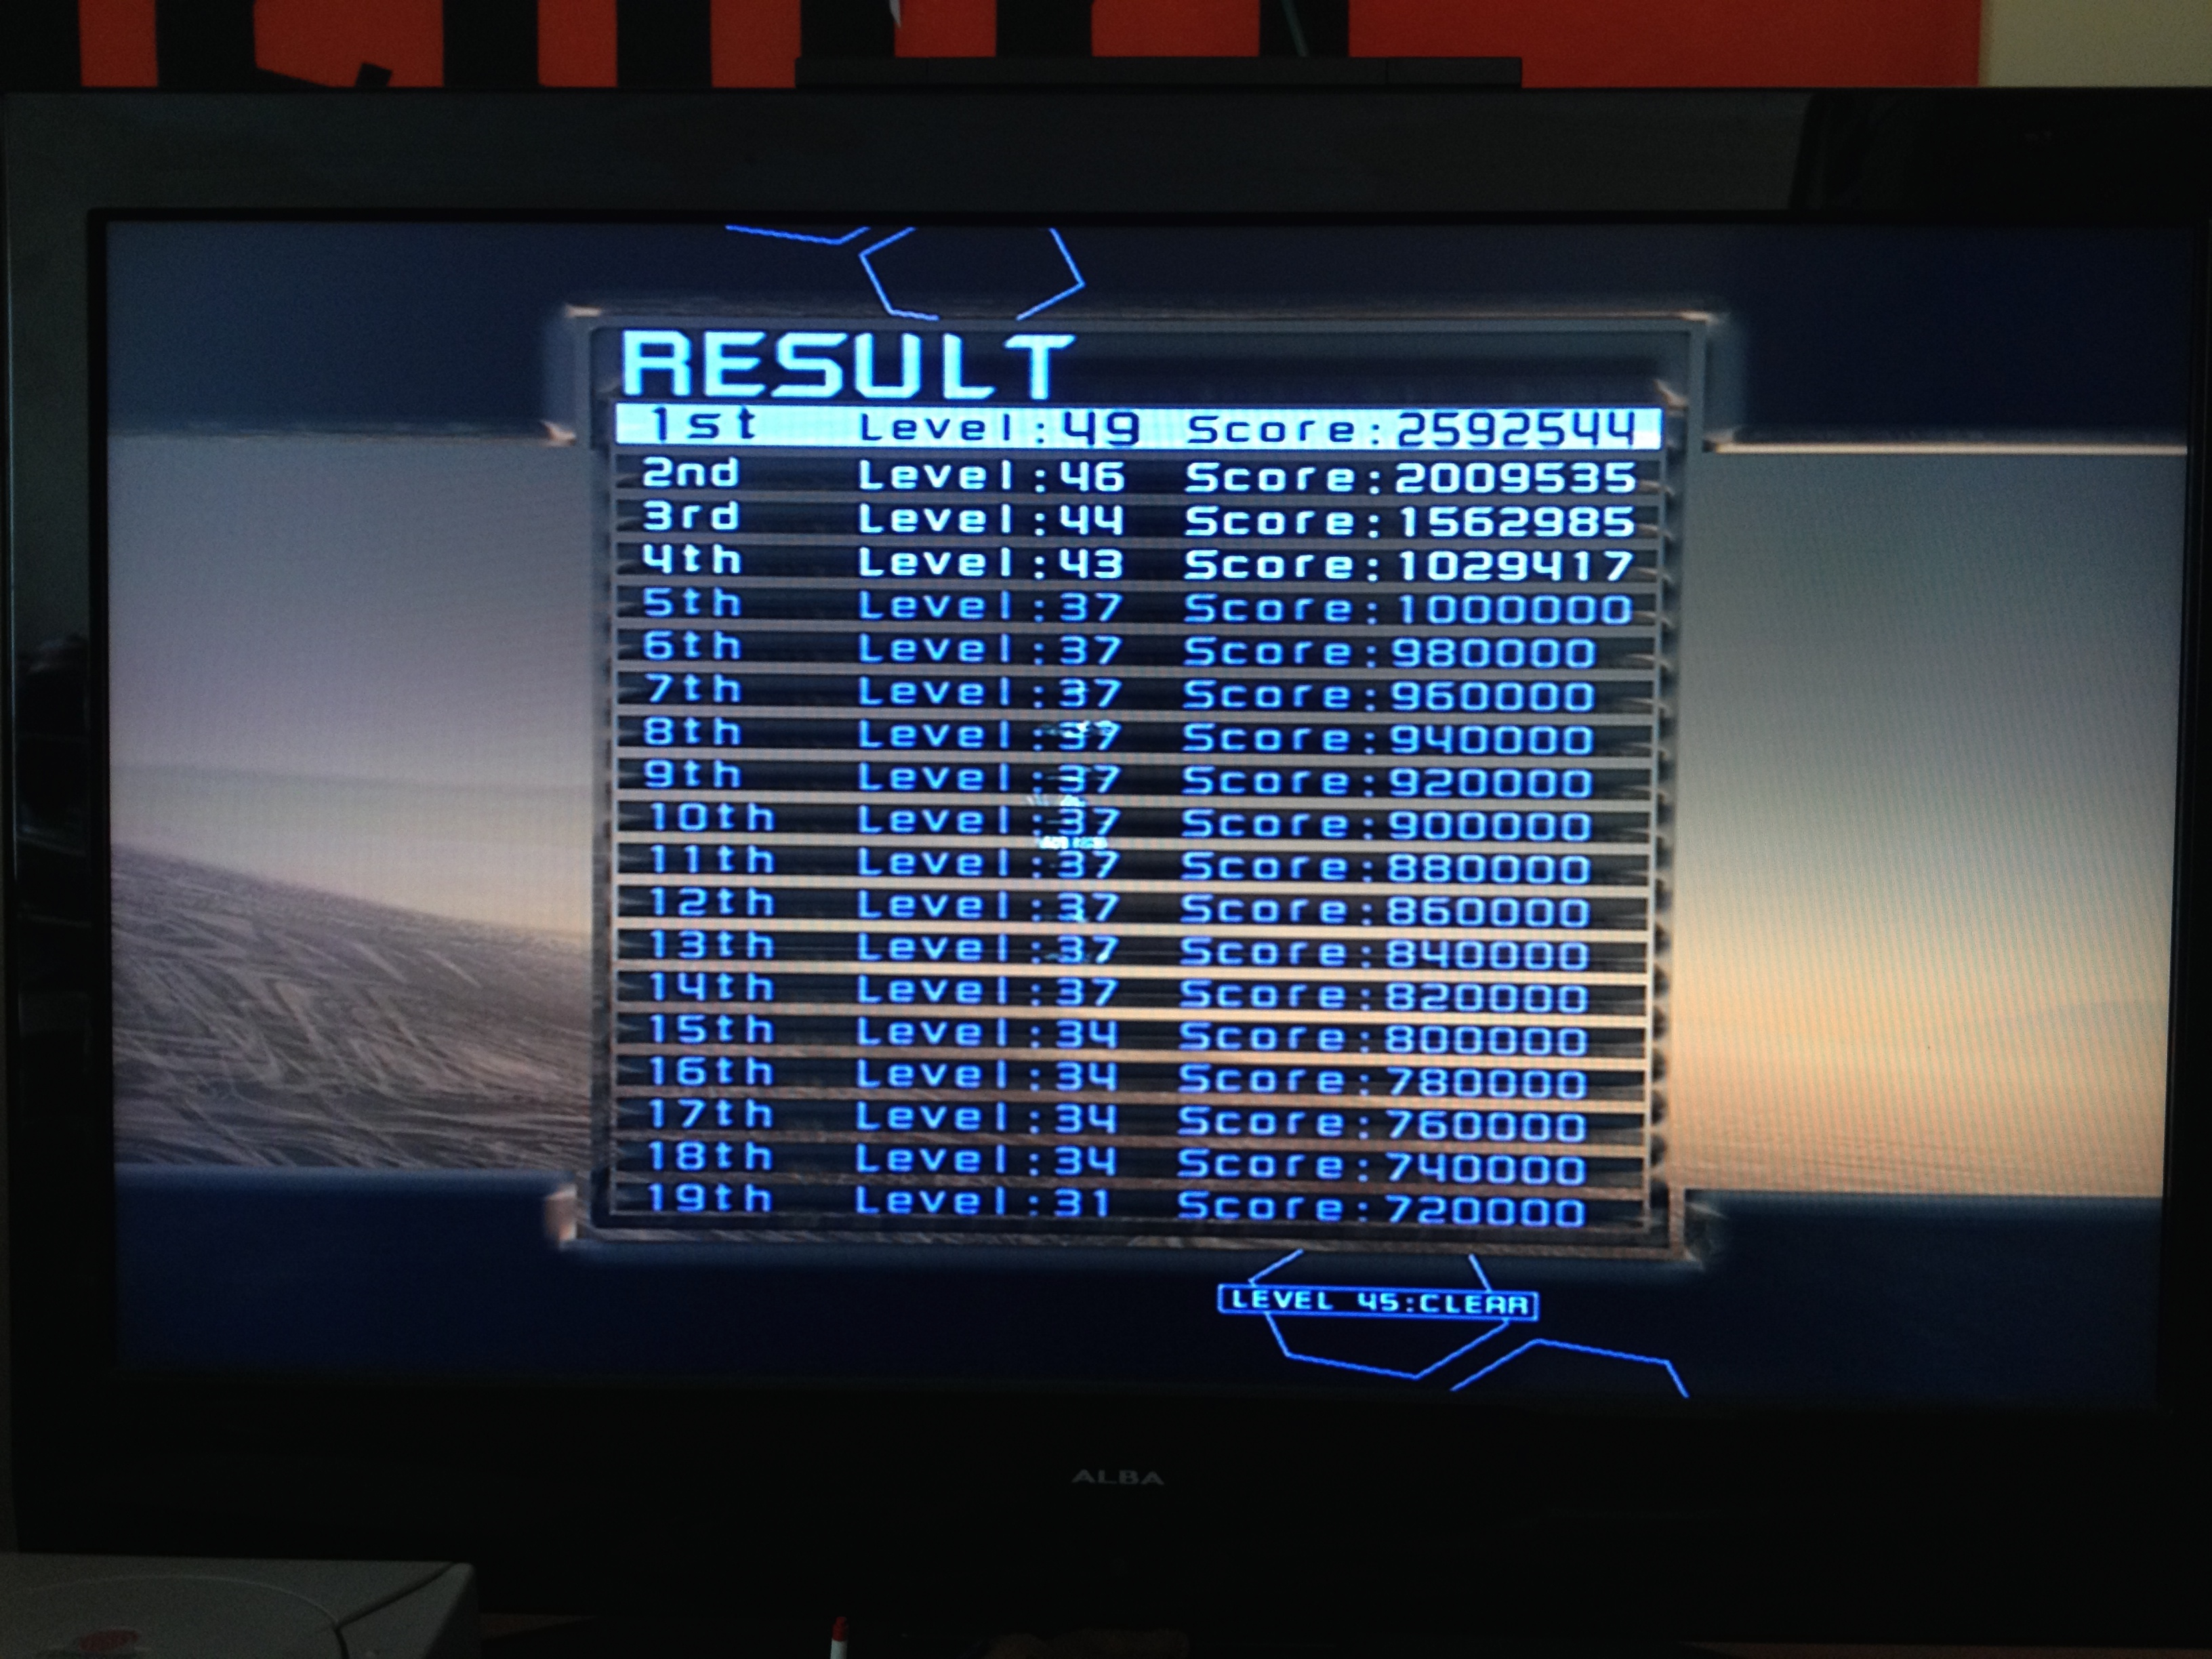 AmetDj: Yakuza 4: Arcade: Boxcelios 2 (Playstation 3) 2,592,544 points on 2014-08-30 05:56:53